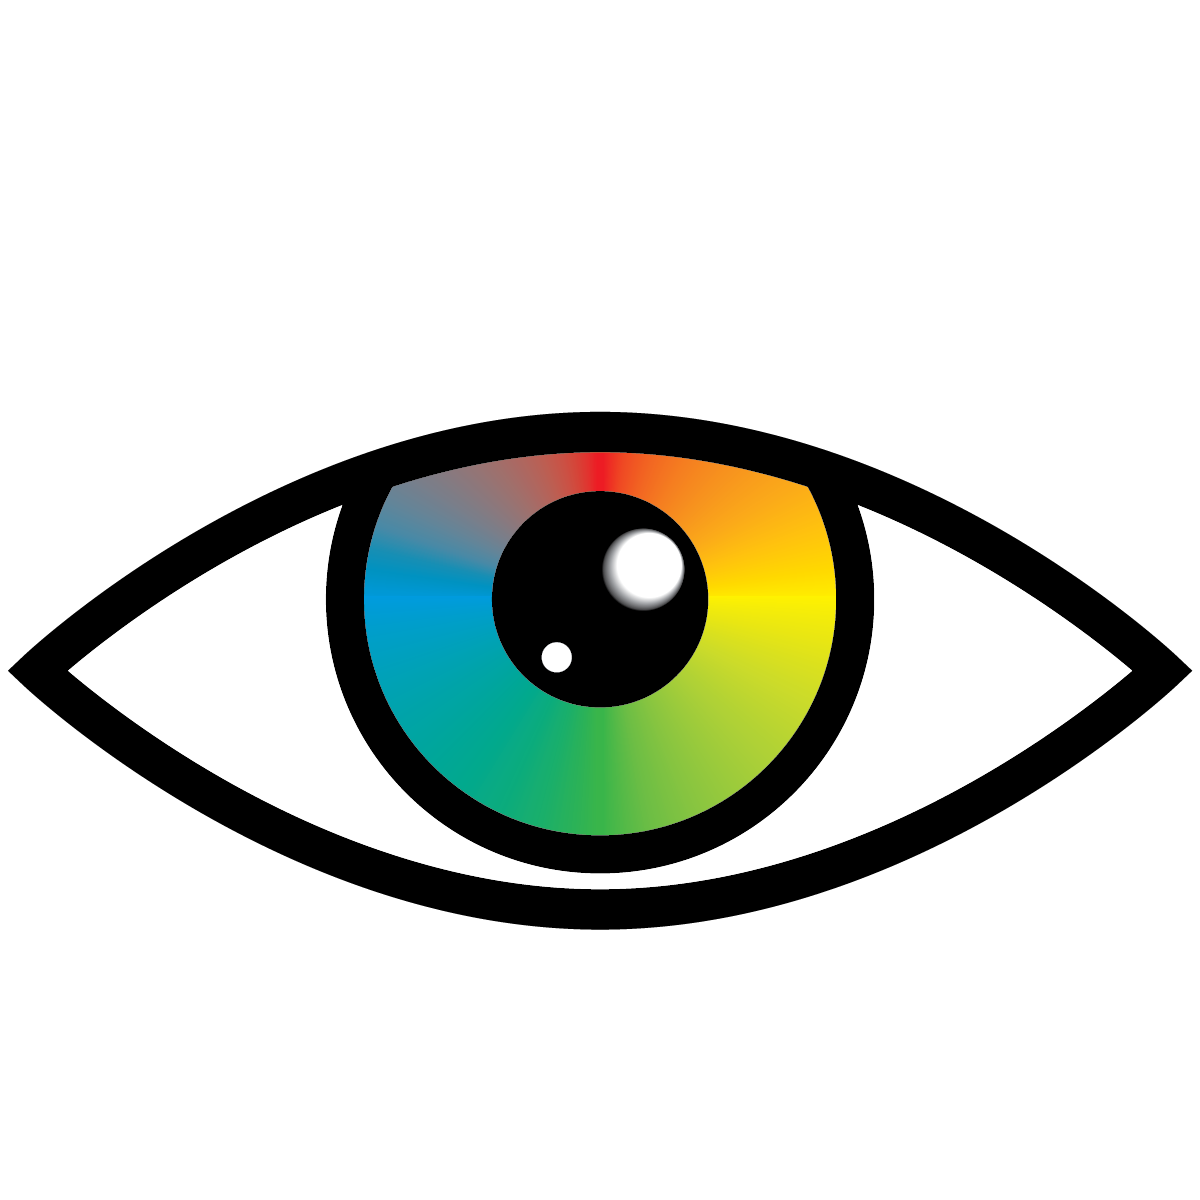 Eye clipart rainbow. Eyeball graphic library